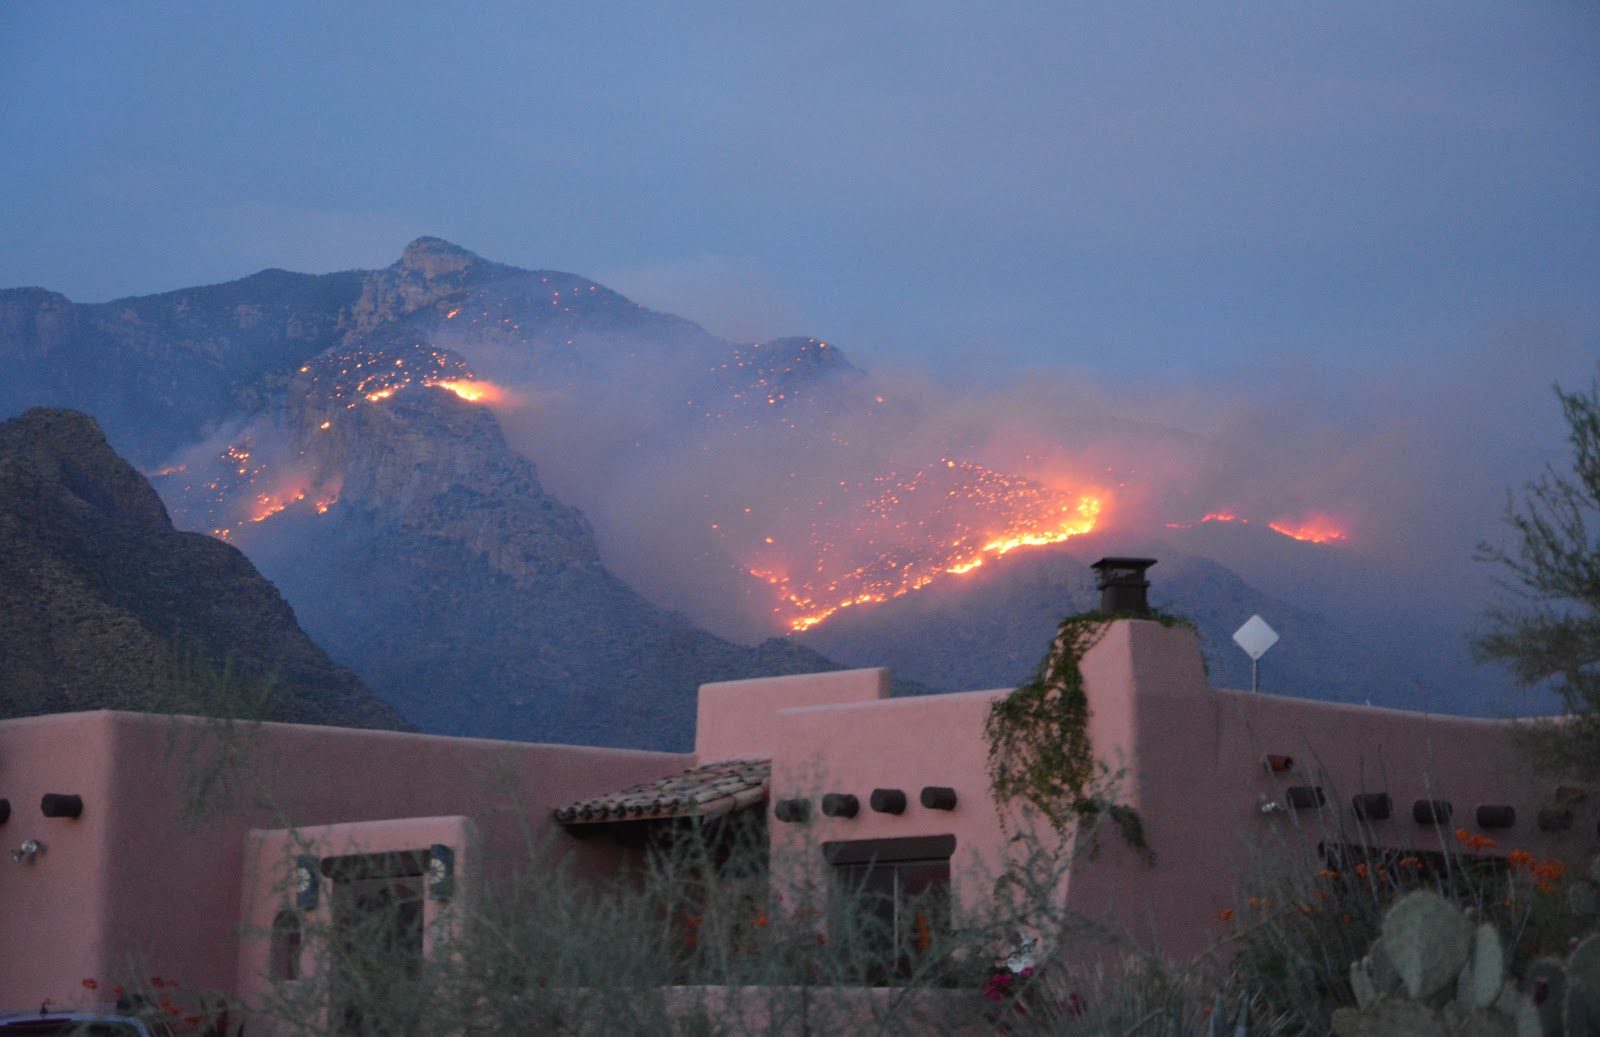 Living on winchester ranch fire in the santa catalina mountains i write this burning up to the top of what is visible from the foothills of the santa catalina mountains the northern boundary of the city of tucson publicscrutiny Gallery